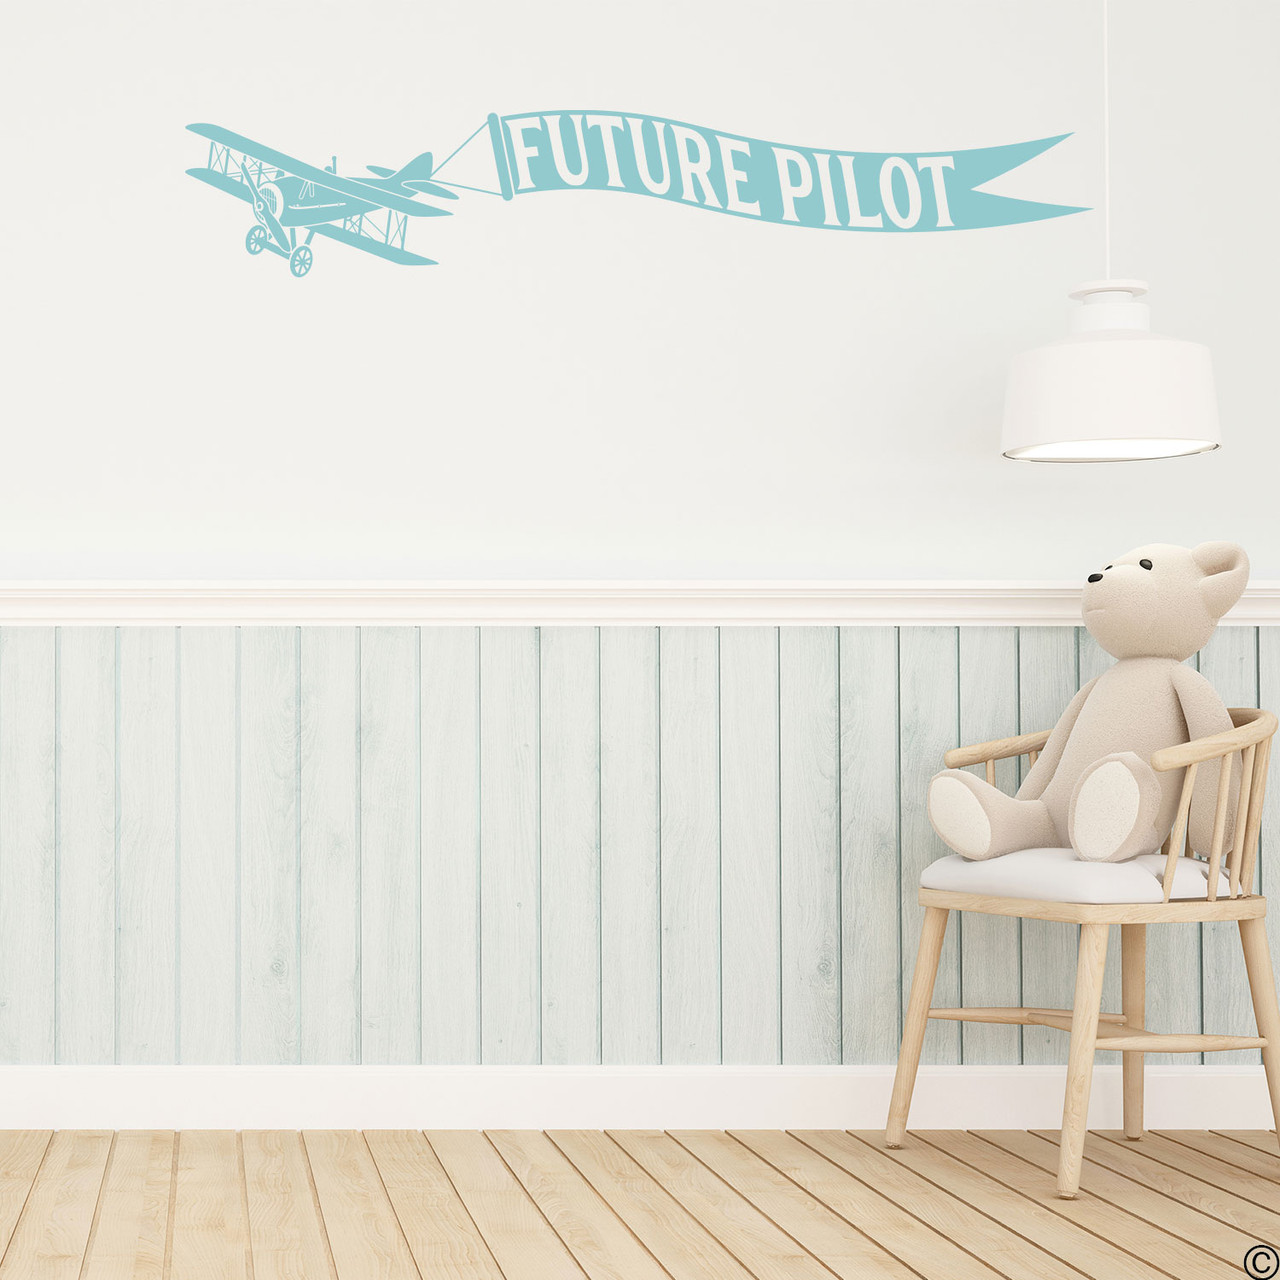 Biplane wall decal with customizable name banner on a kids playroom wall in limited edition beach house vinyl.